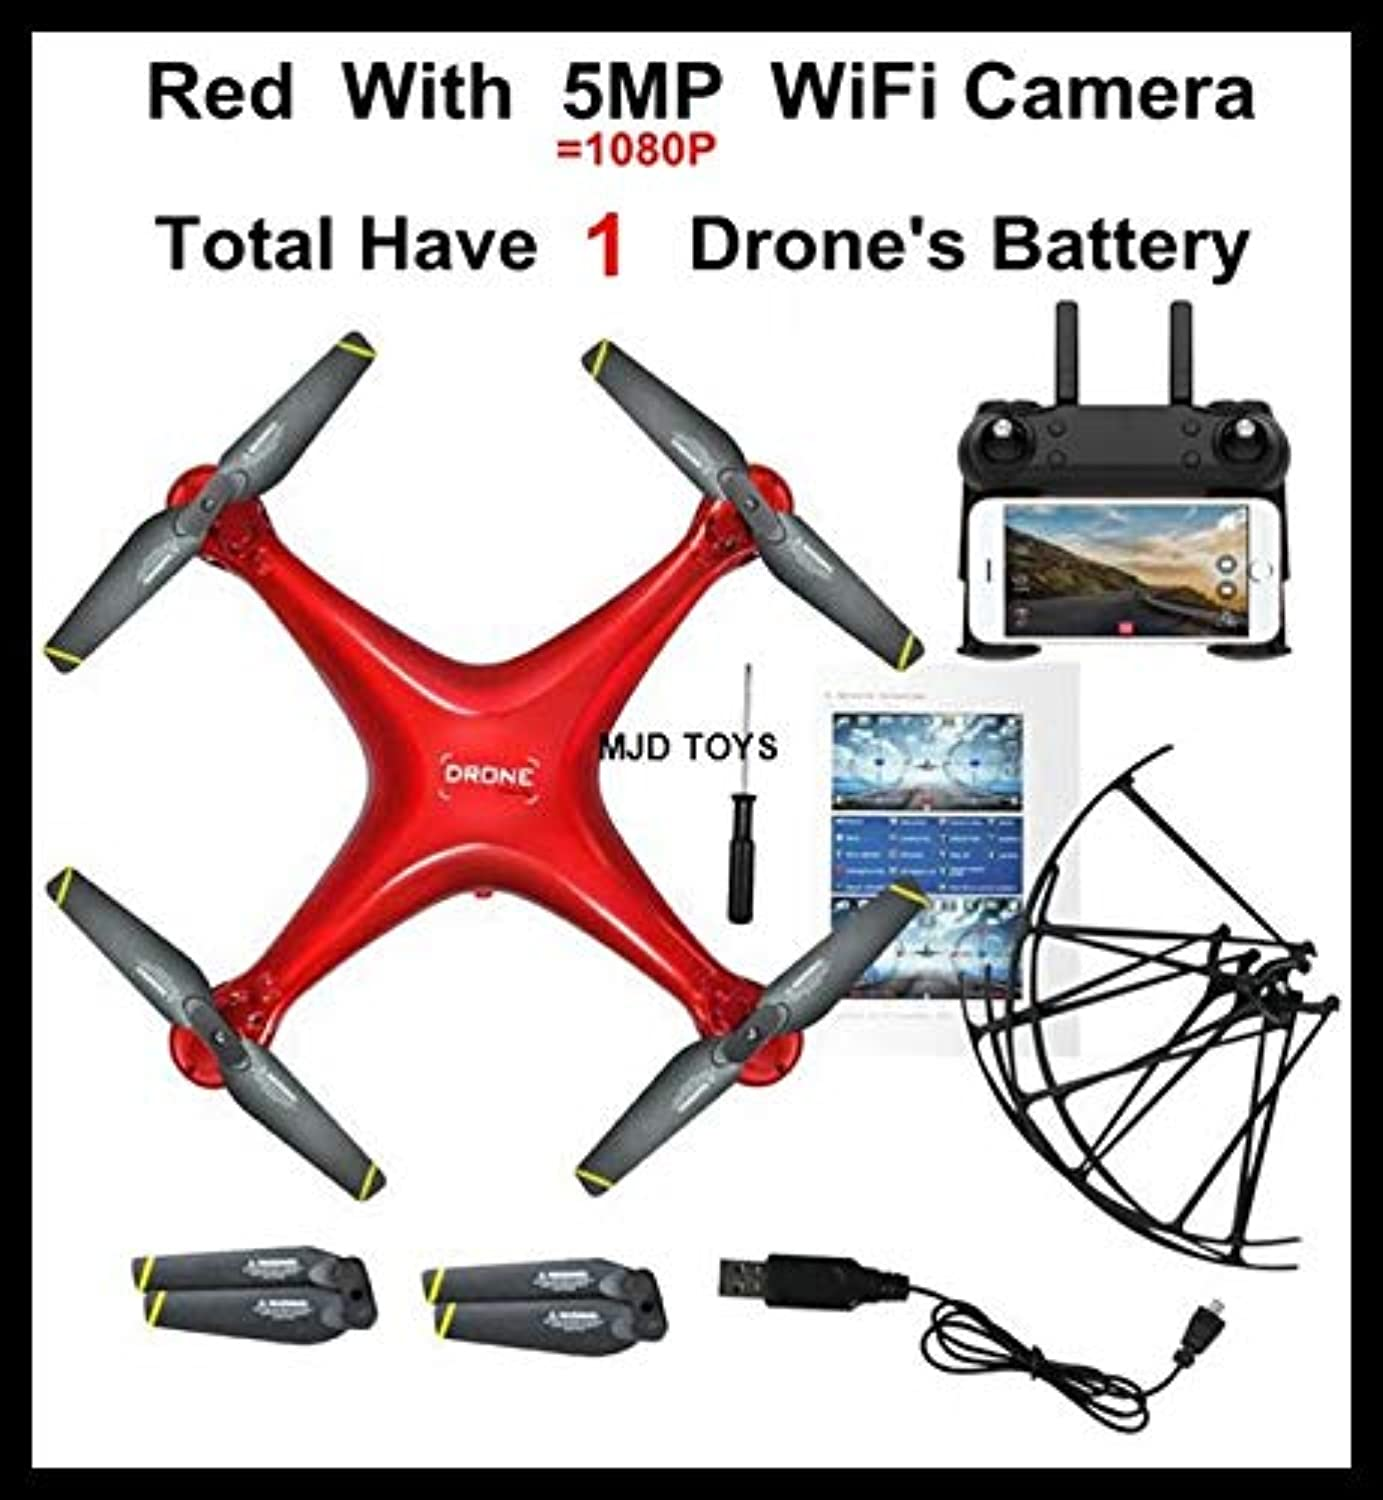 Generic MJD K106 Newest RC Camera Drone Helicopter Quadcopter with HD WiFi FPV Camera Auto Return Altitude Hold VS sg600 xs809sw ky601s Red MJD K106 5MP 1b